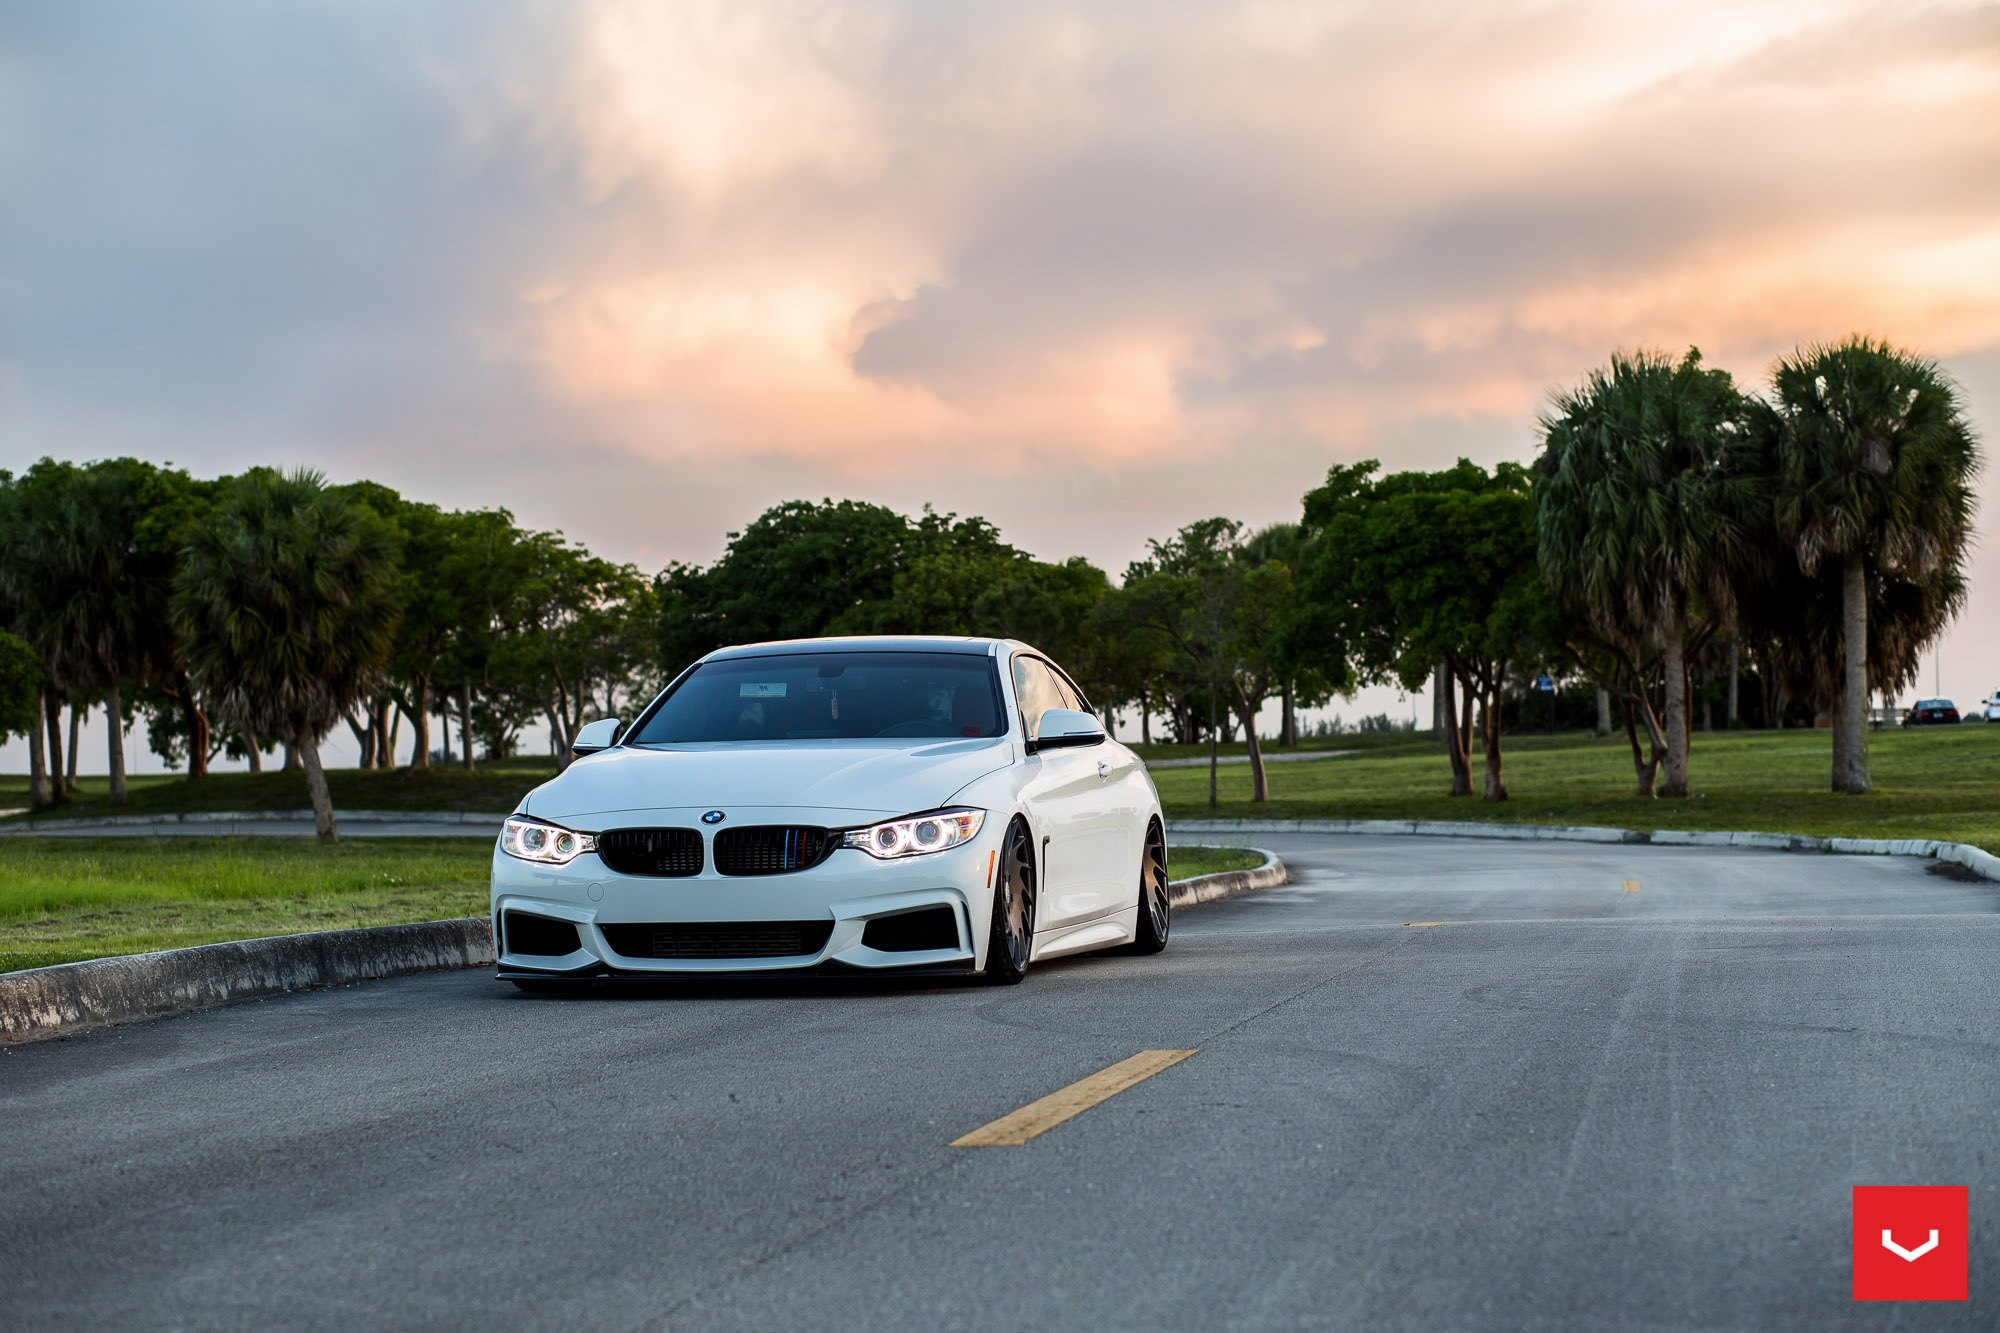 Lowered And Awesome BMW Series On Vossen Rims CARiDcom Gallery - Awesome bmw